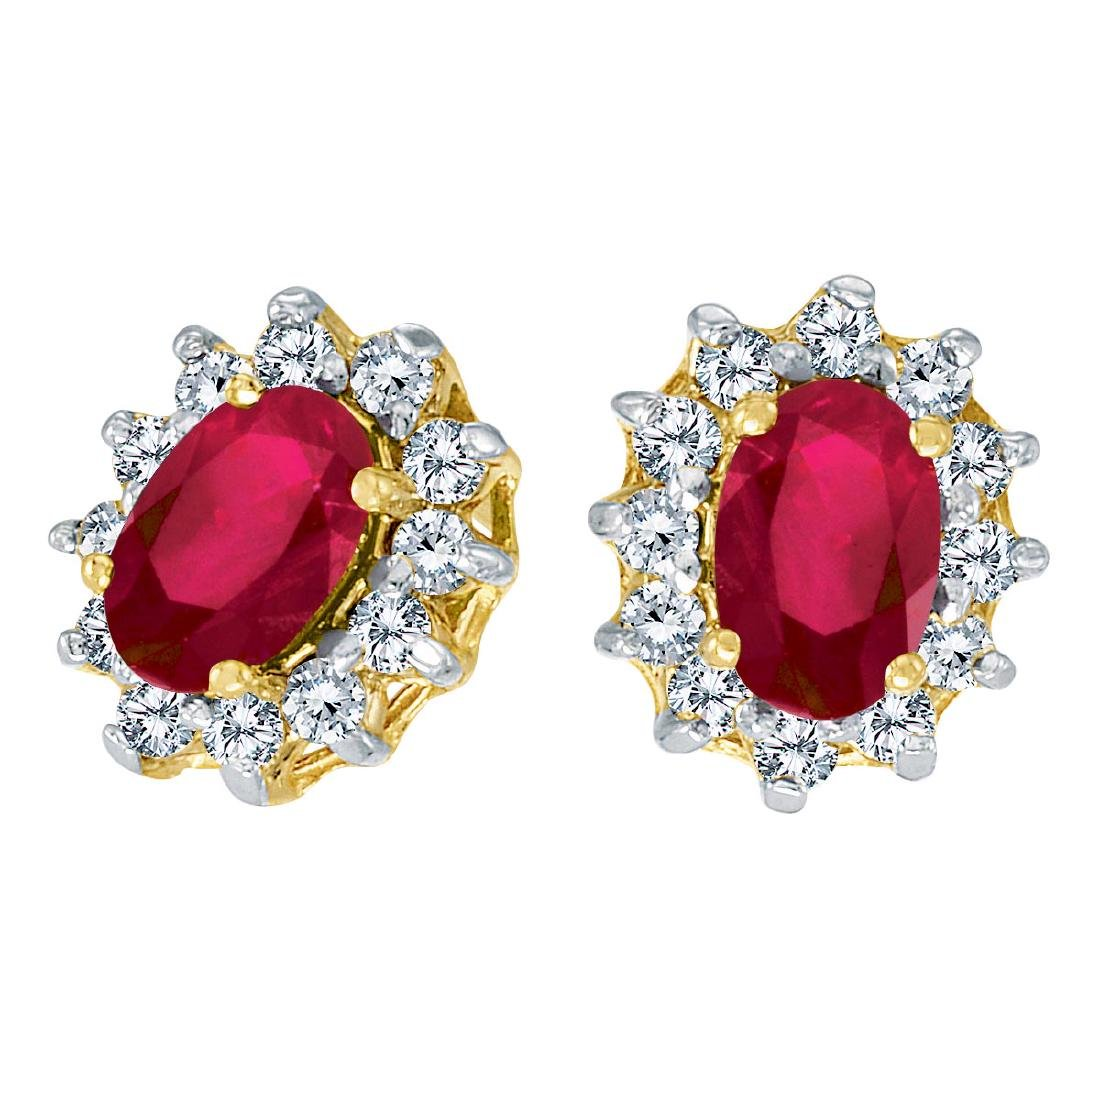 Certified 14k Yellow Gold Oval Ruby and .25 total CTW D